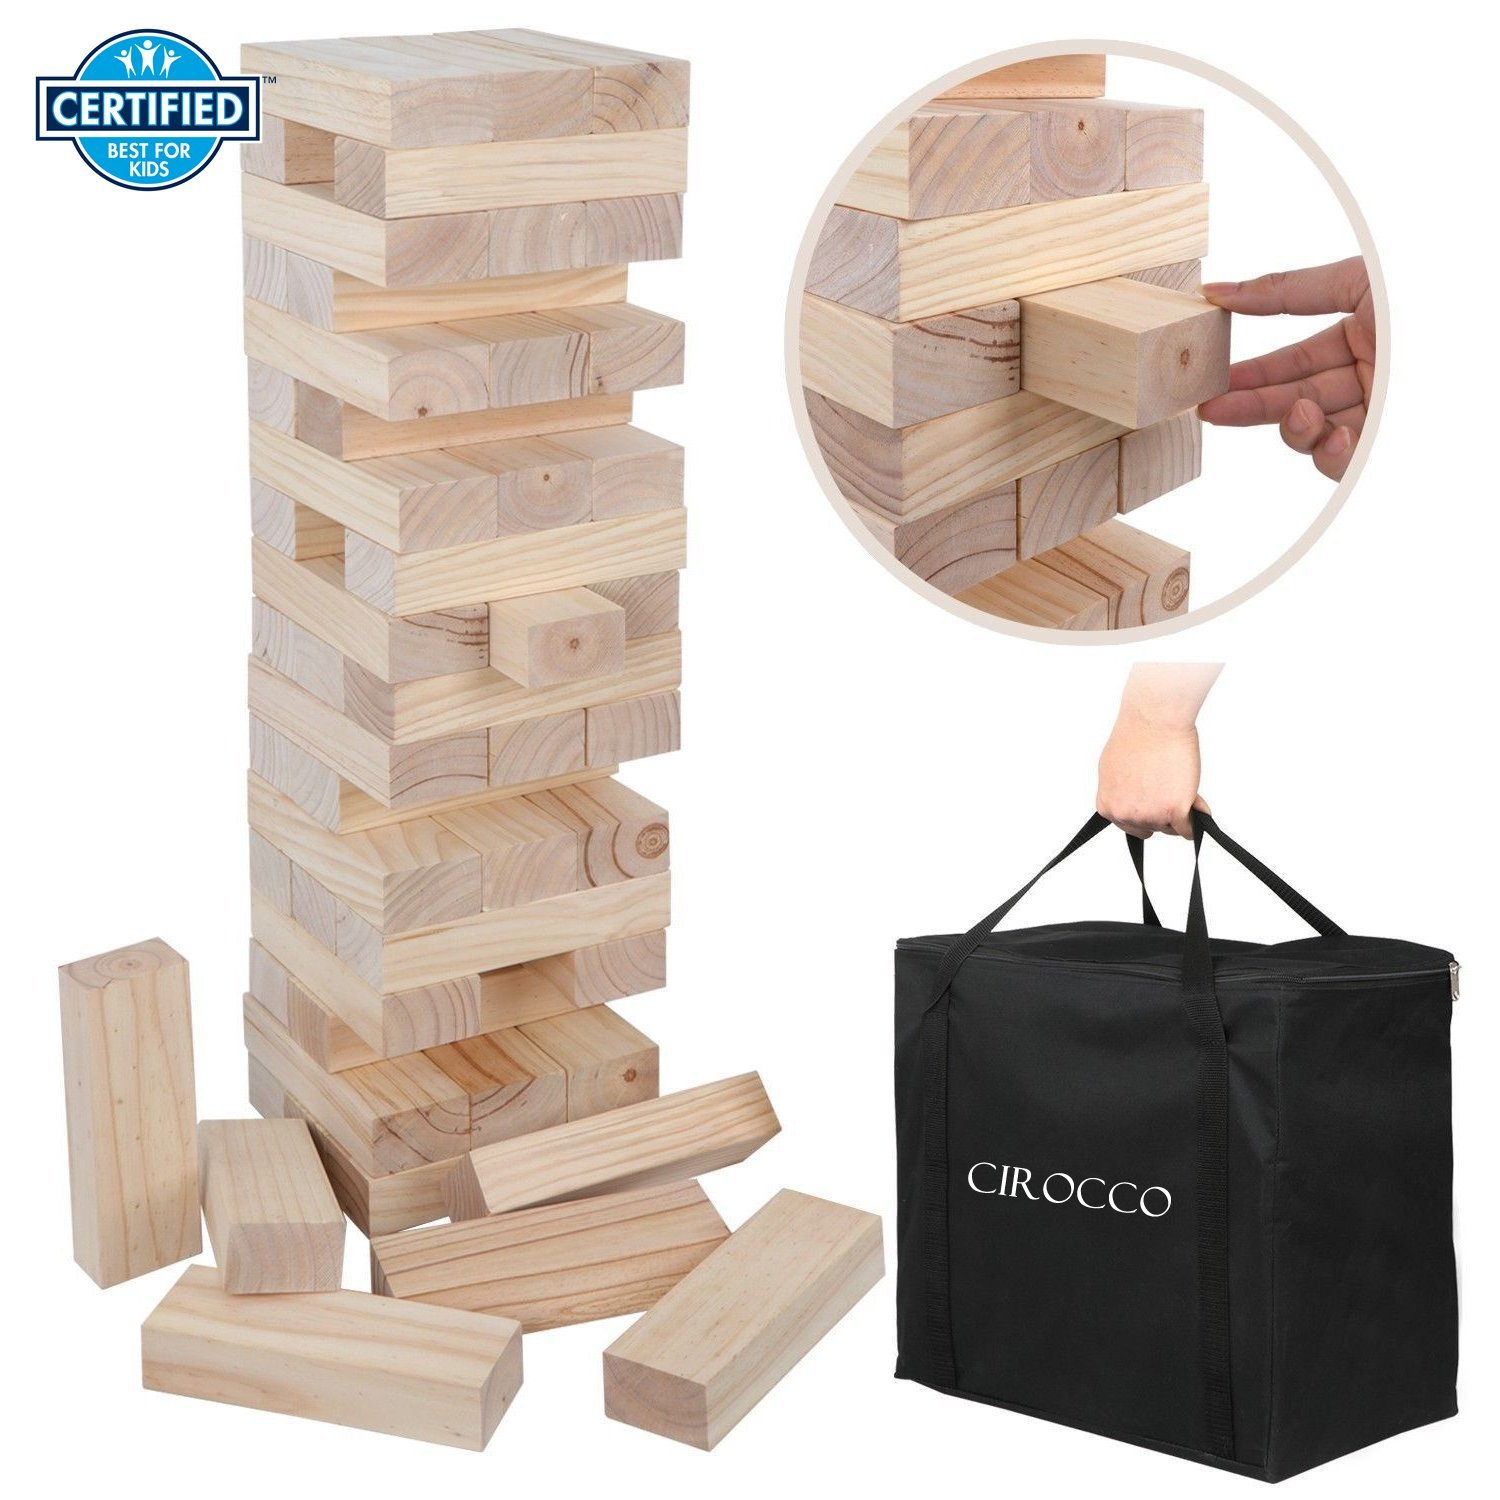 Cirocco Wooden Jumbo Topping Tower with Heavy Duty Storage Bag – Giant Wood Block Tower Game | 54 Block Hardwood Pull and Stack for Friends Family Outdoor Kids Adult Teenager – Enhance Concentrations